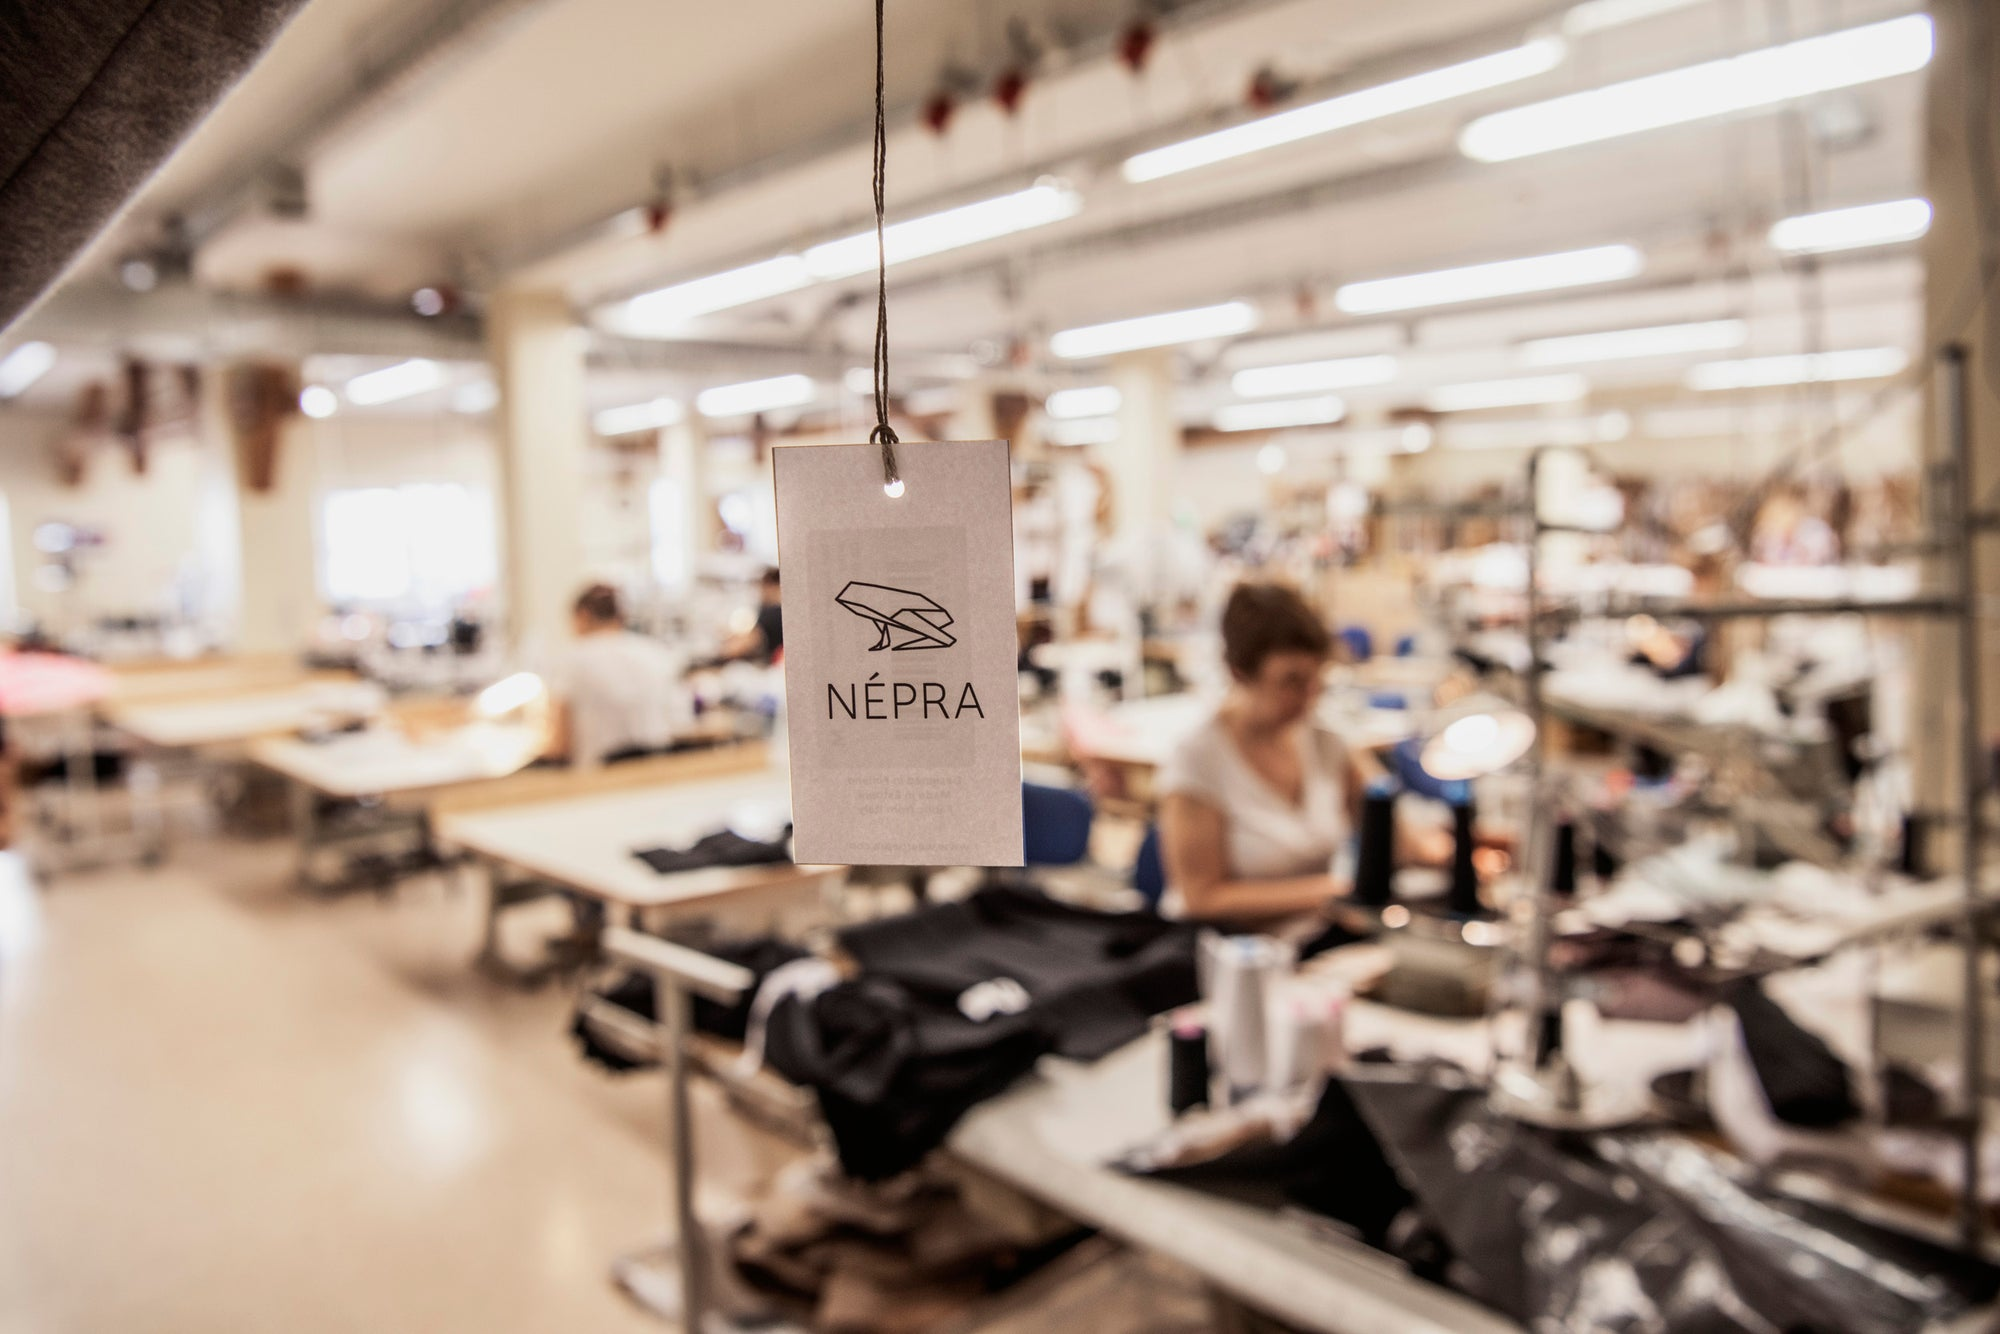 Népra shares its passion for ethical manufacturing and holistic wellbeing on Speak Of The Frog Népra Blog. .